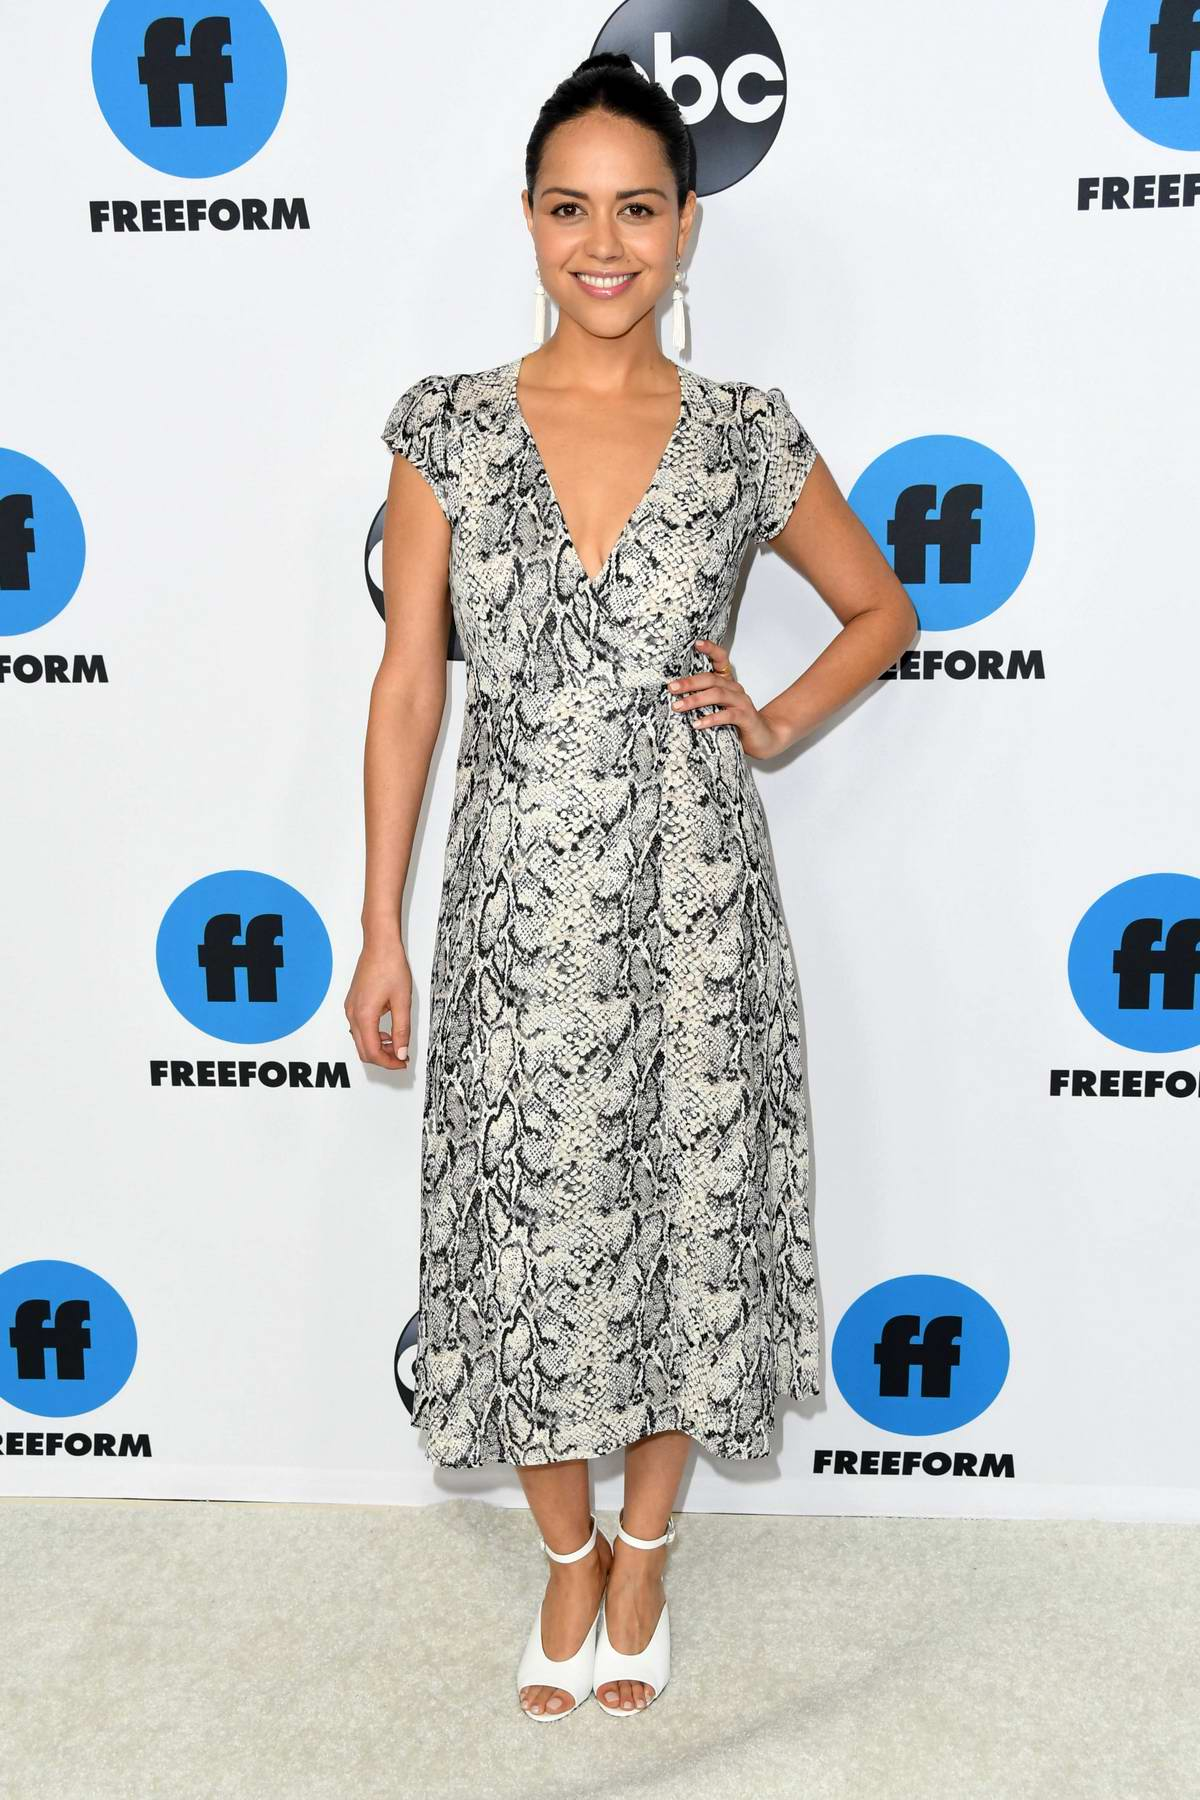 Alyssa Diaz attends the Freeform's TCA Winter Press Tour in Los Angeles